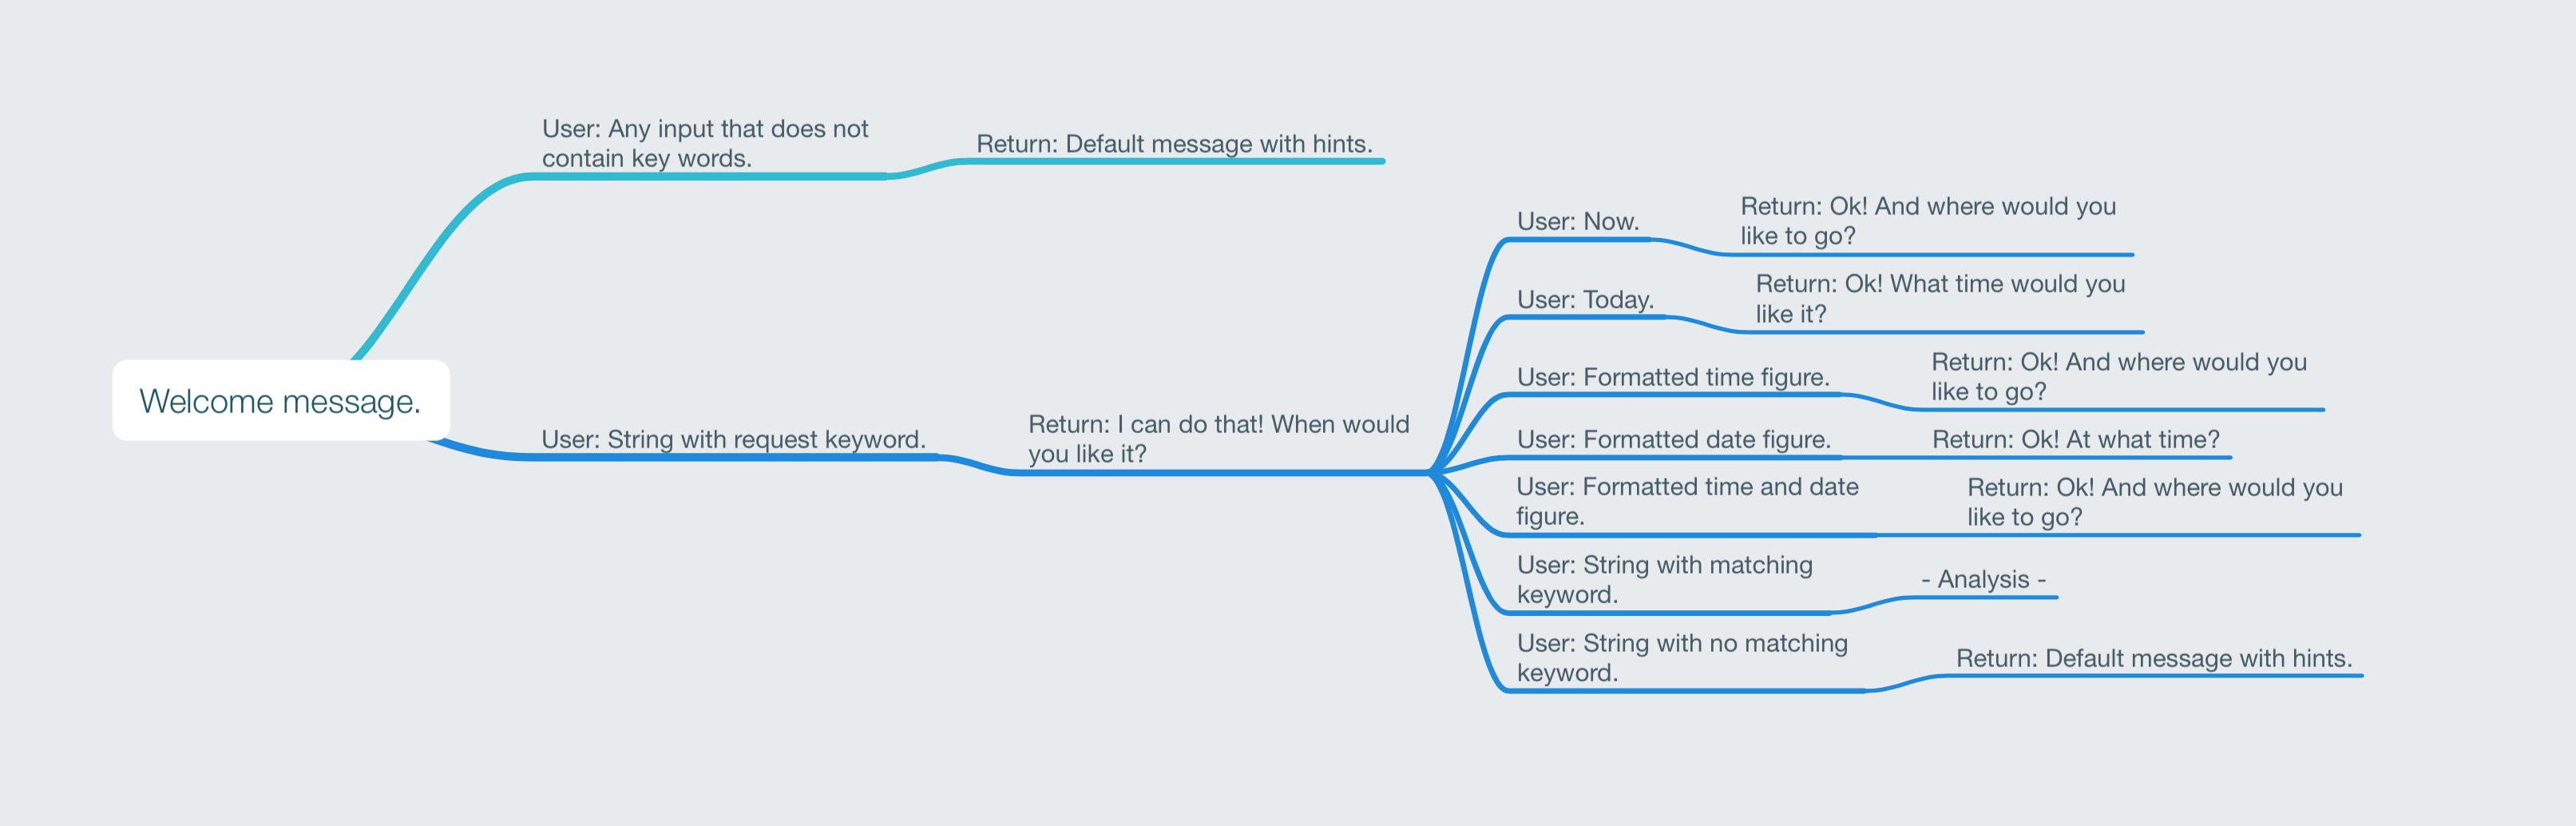 Blog | A Creative Director on chatbots - Part 1: This is